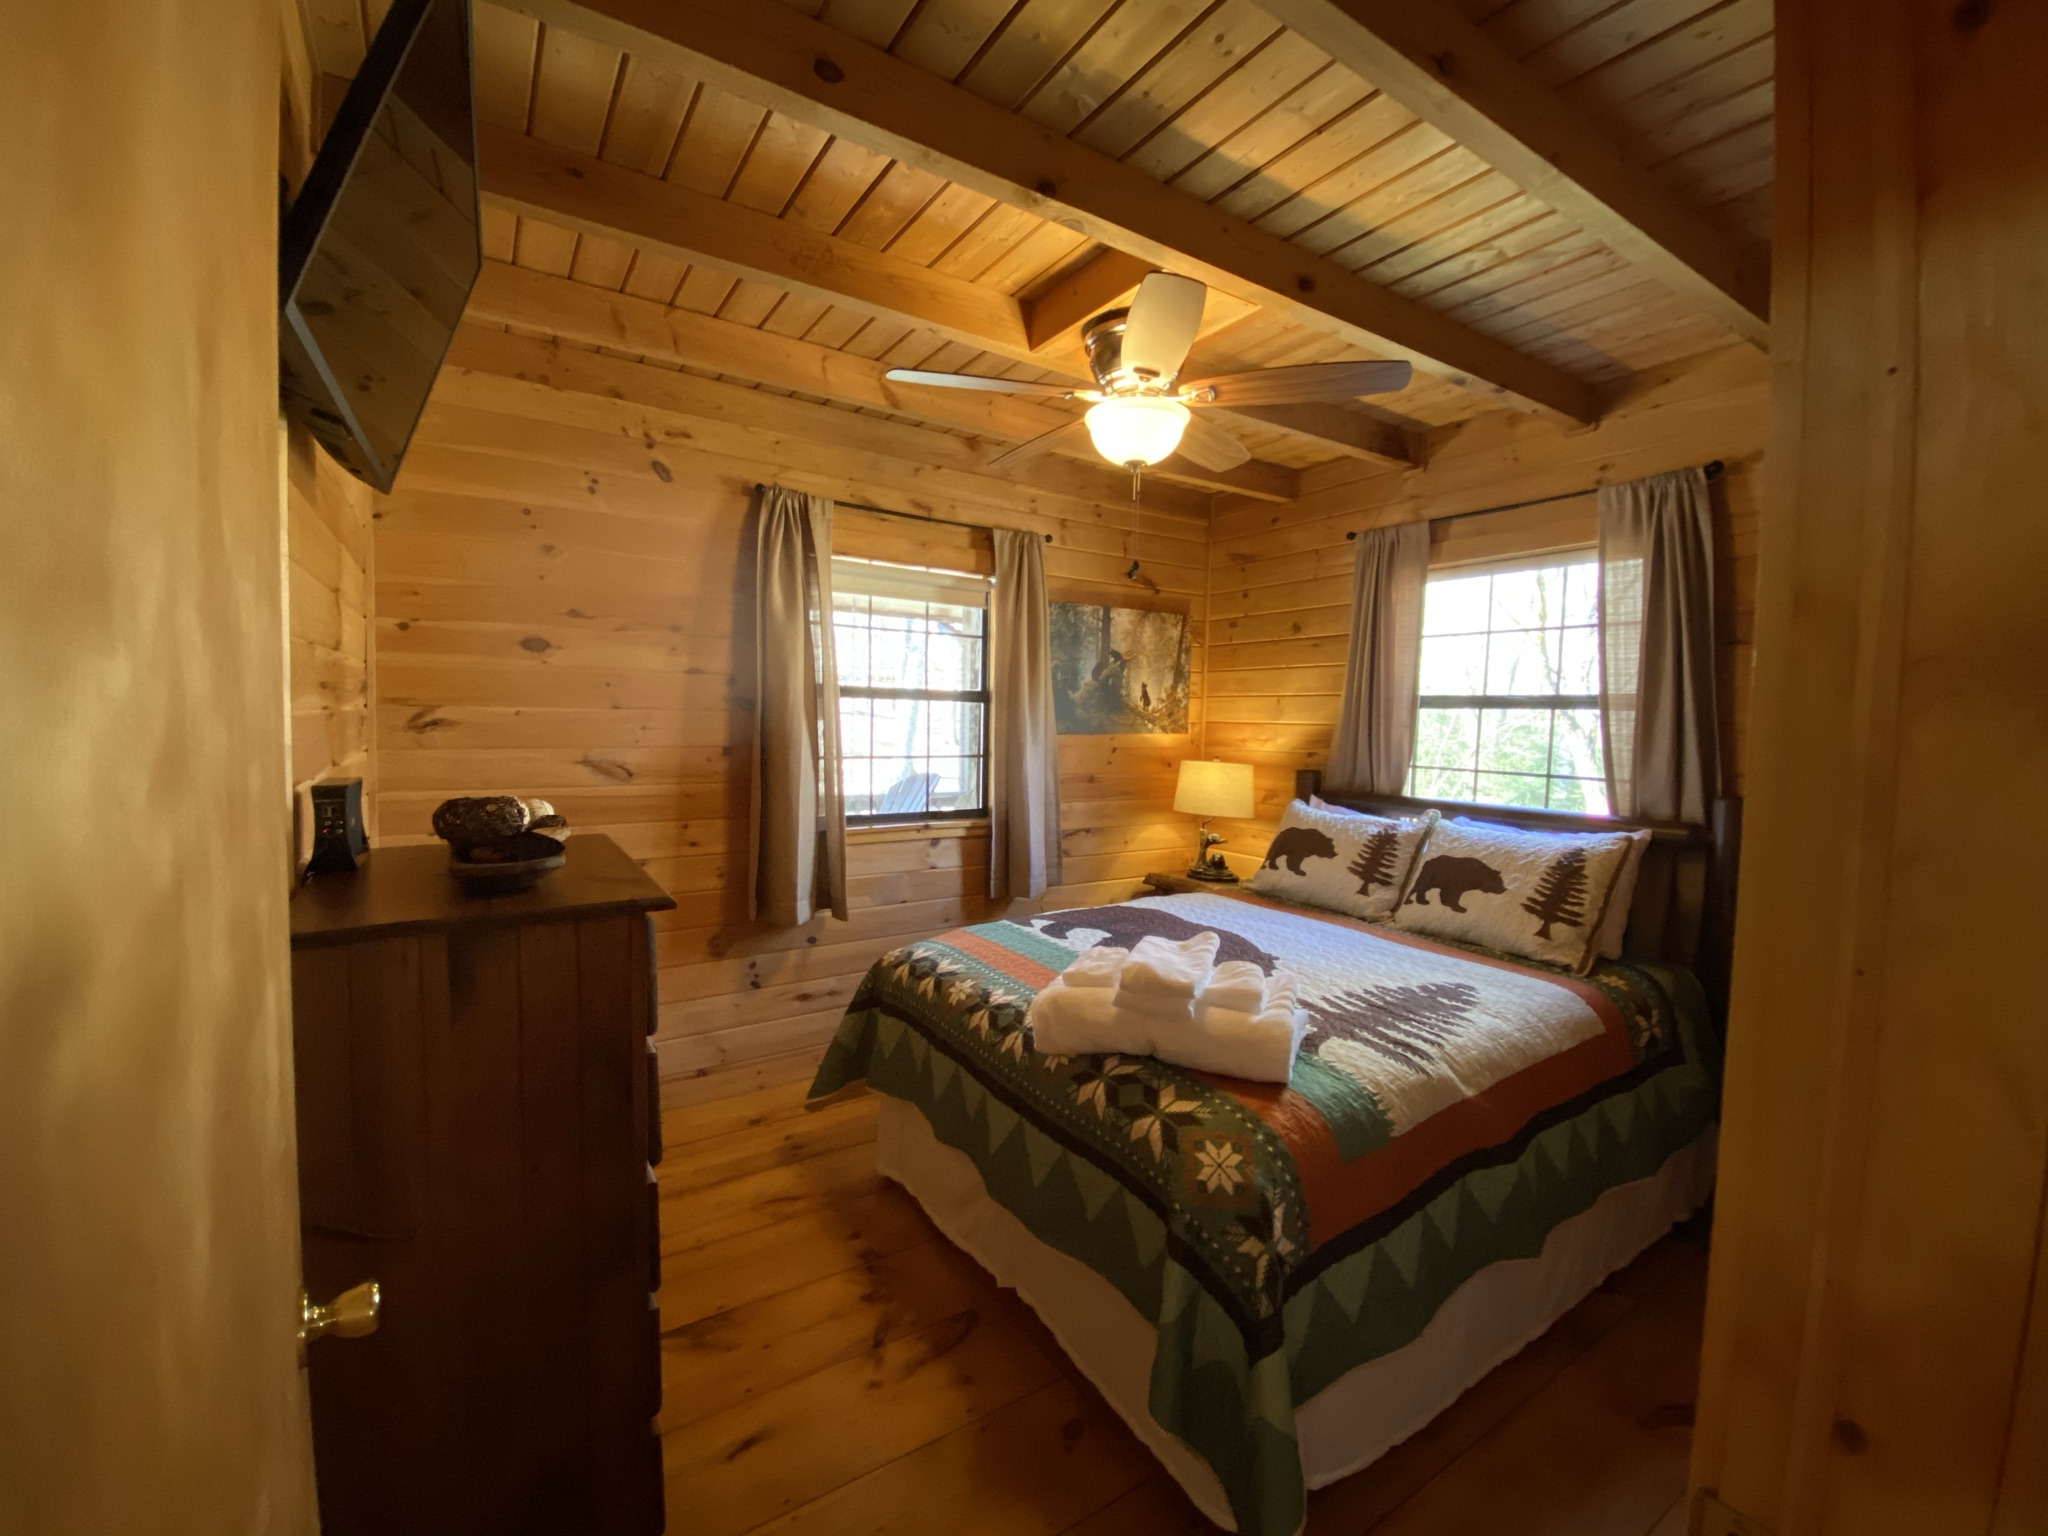 Bedroom two has a queen-sized bed